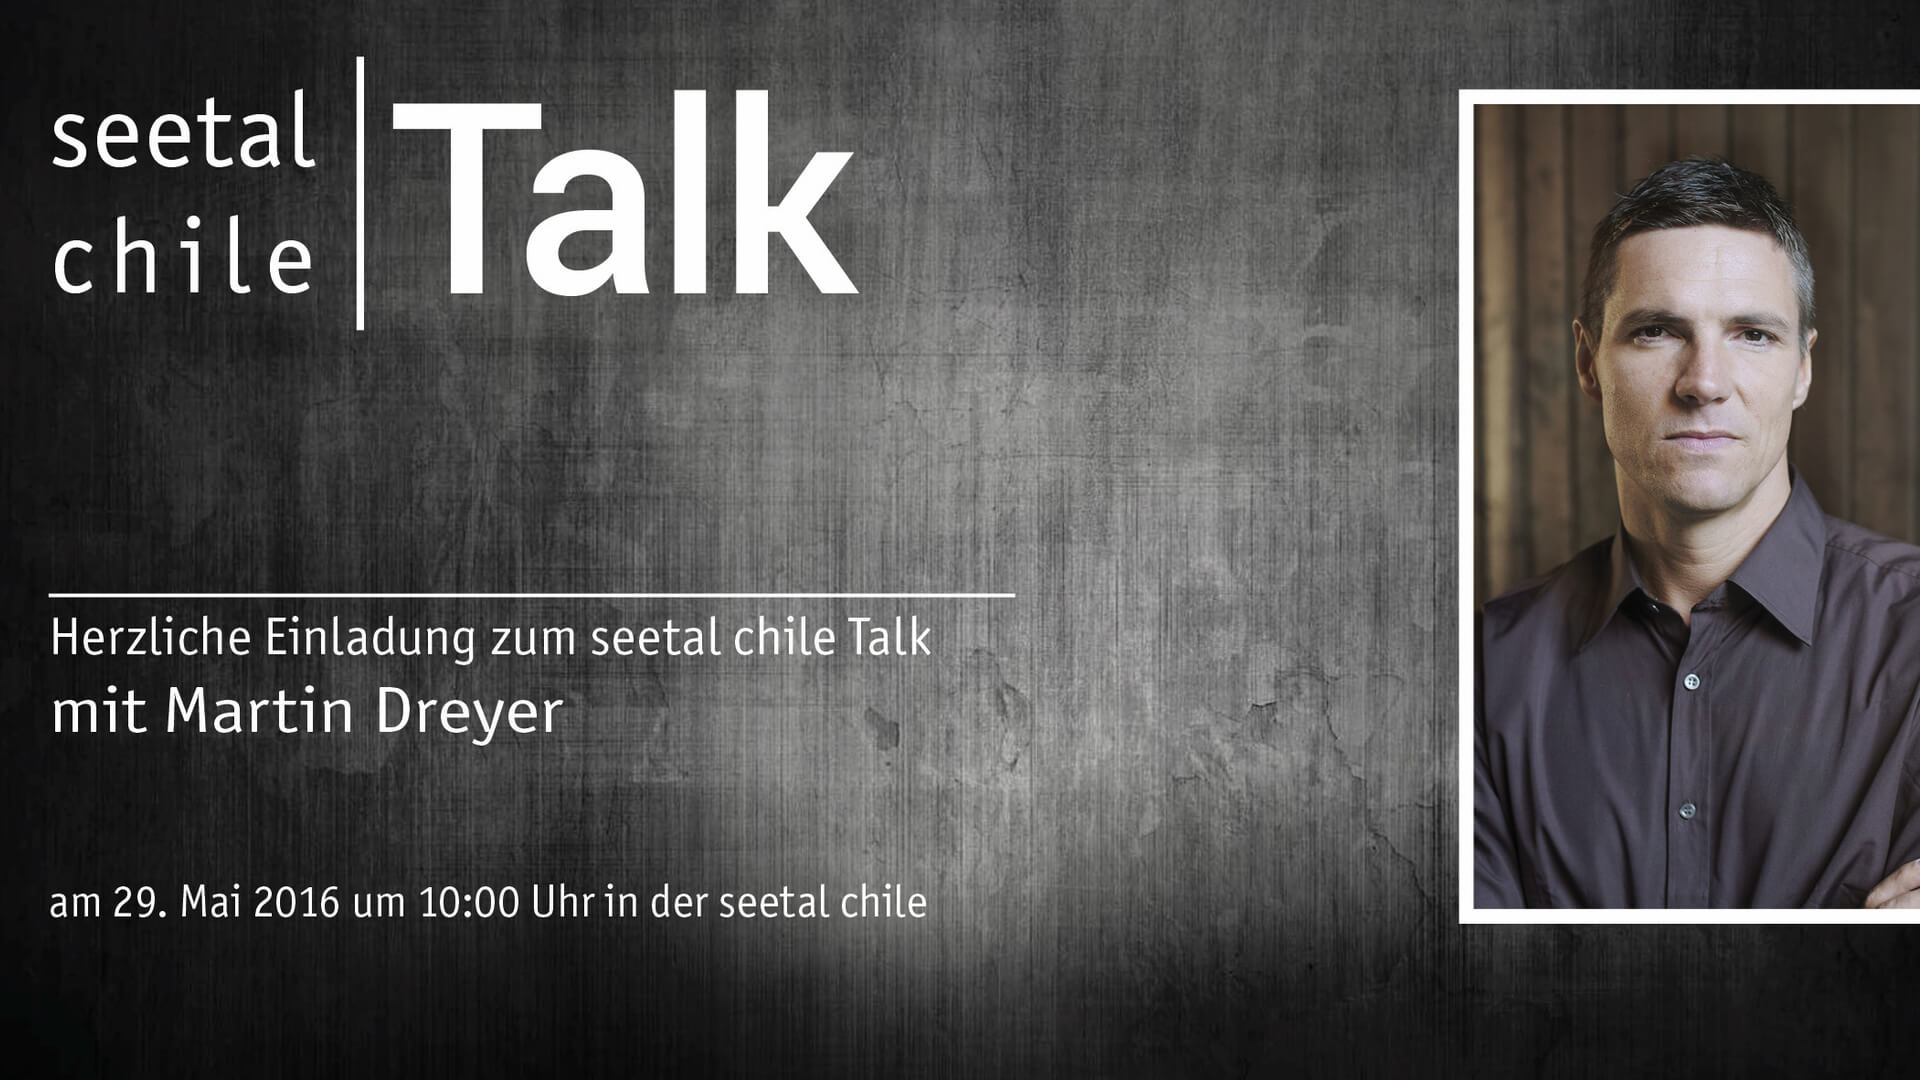 https://sermons.seetal-chile.ch/wp-content/uploads/sermons/2018/11/seetal-chile-Talk_Martin-Dreyer.jpg